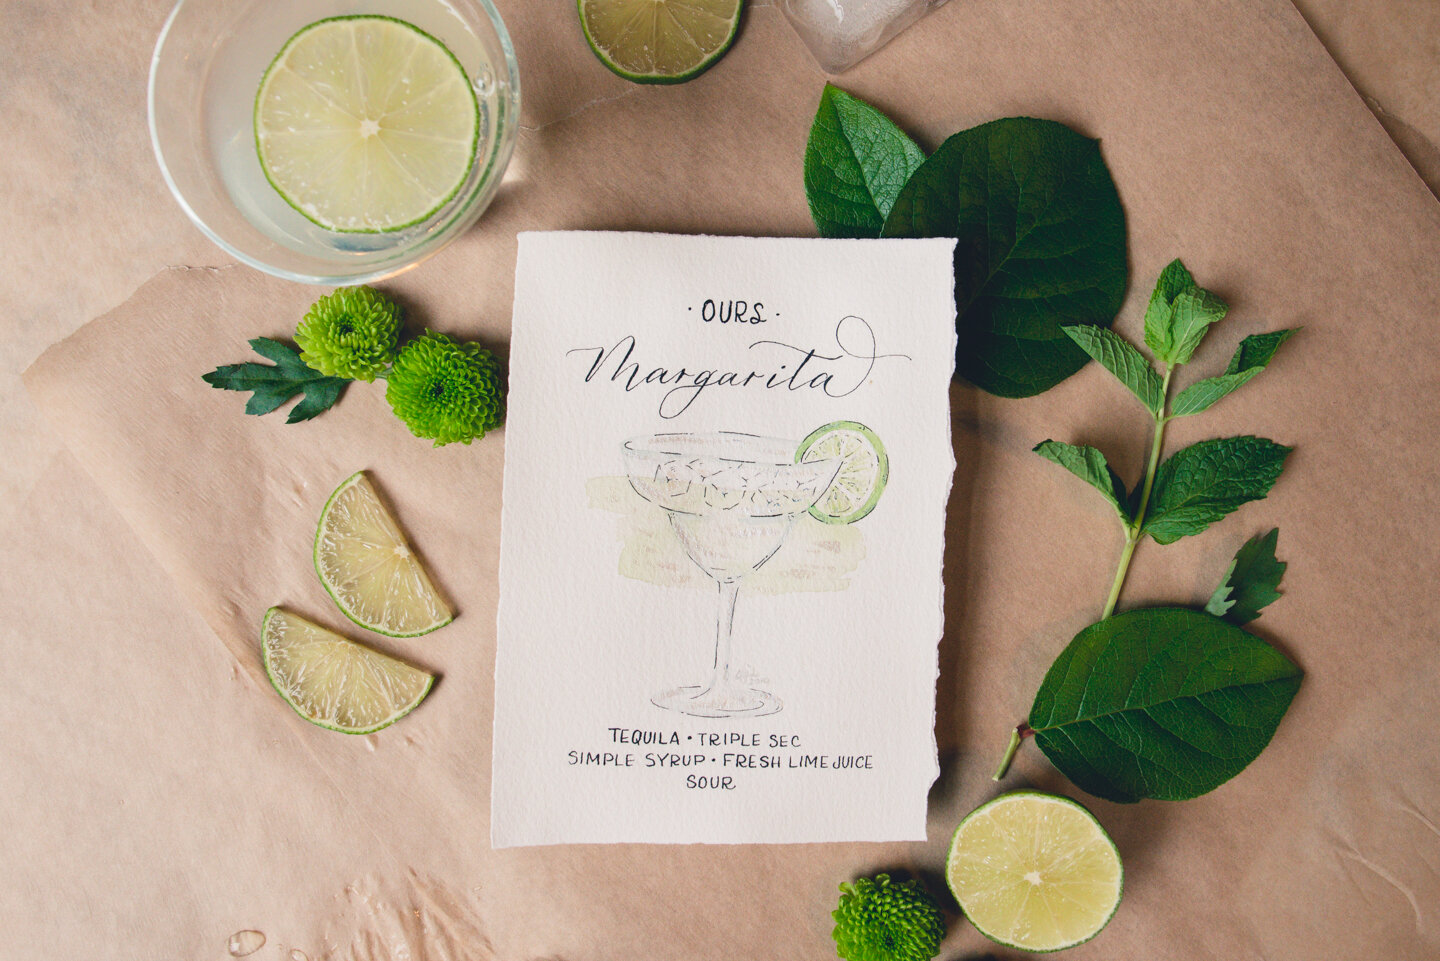 Signature cocktail menu with watercolor illustration and modern calligraphy.